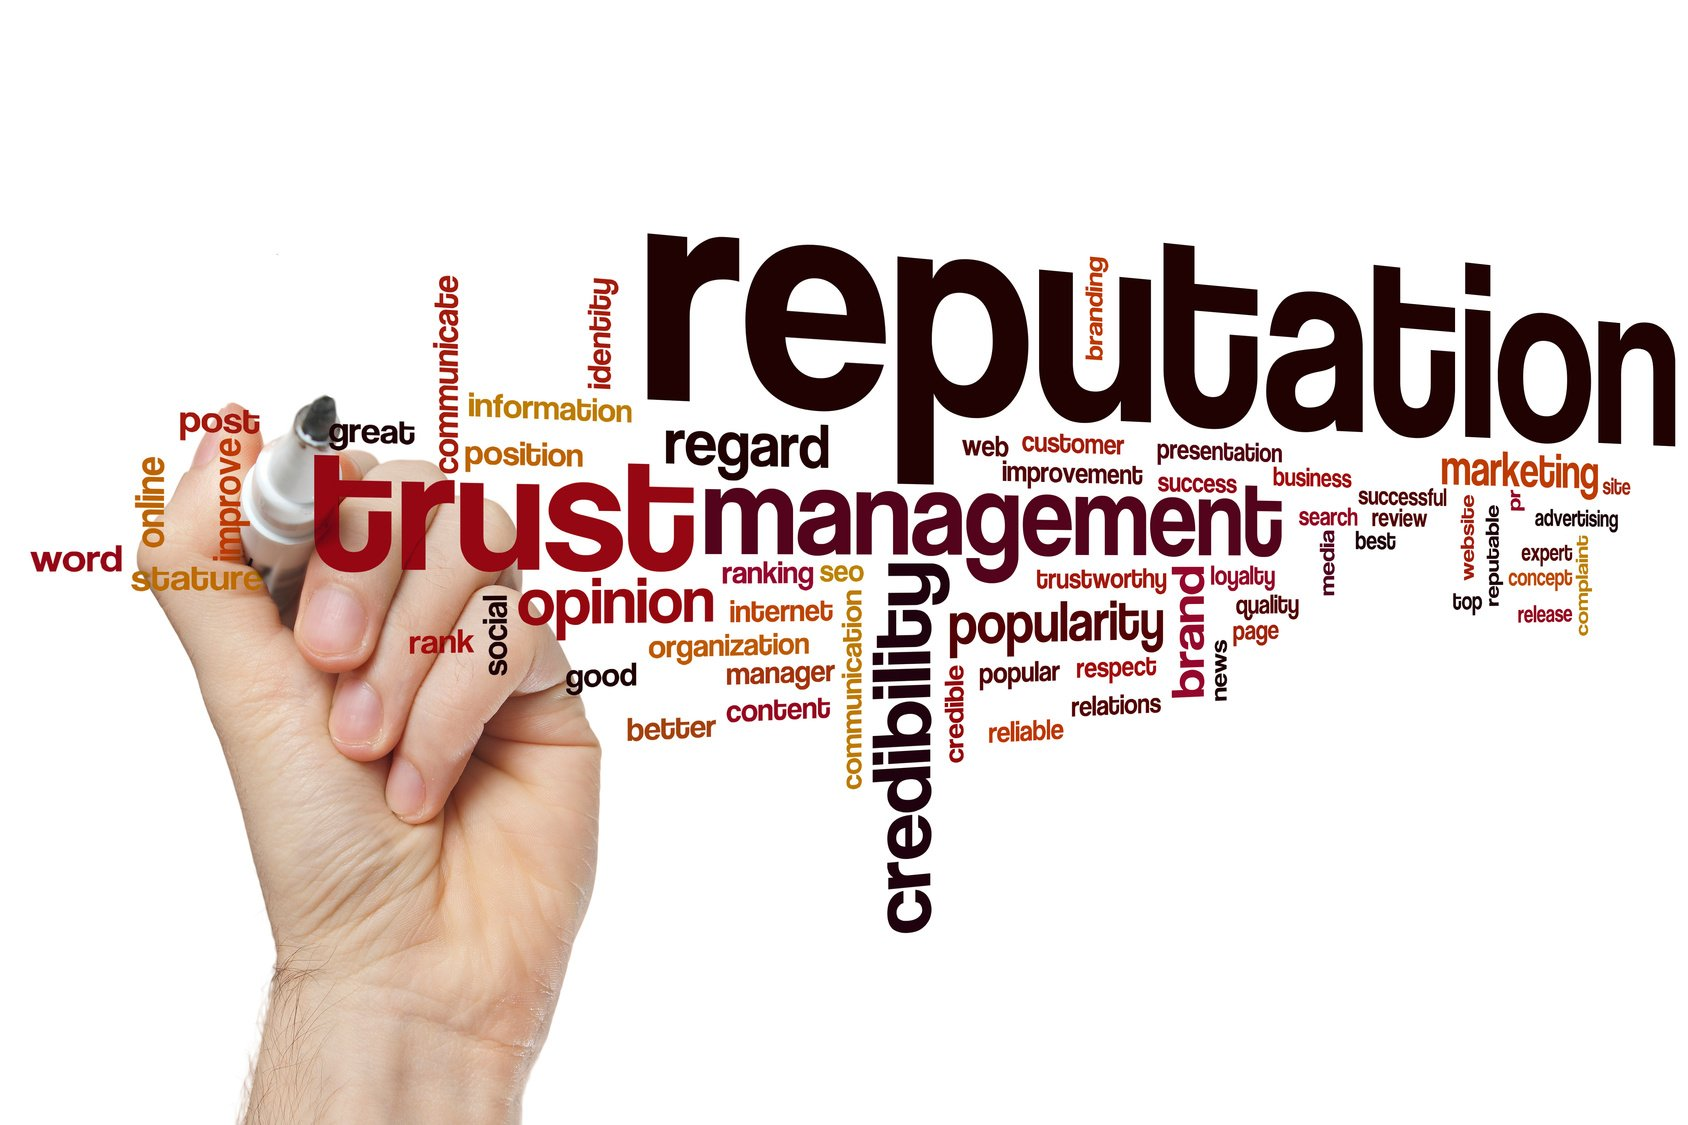 social media and reputation management